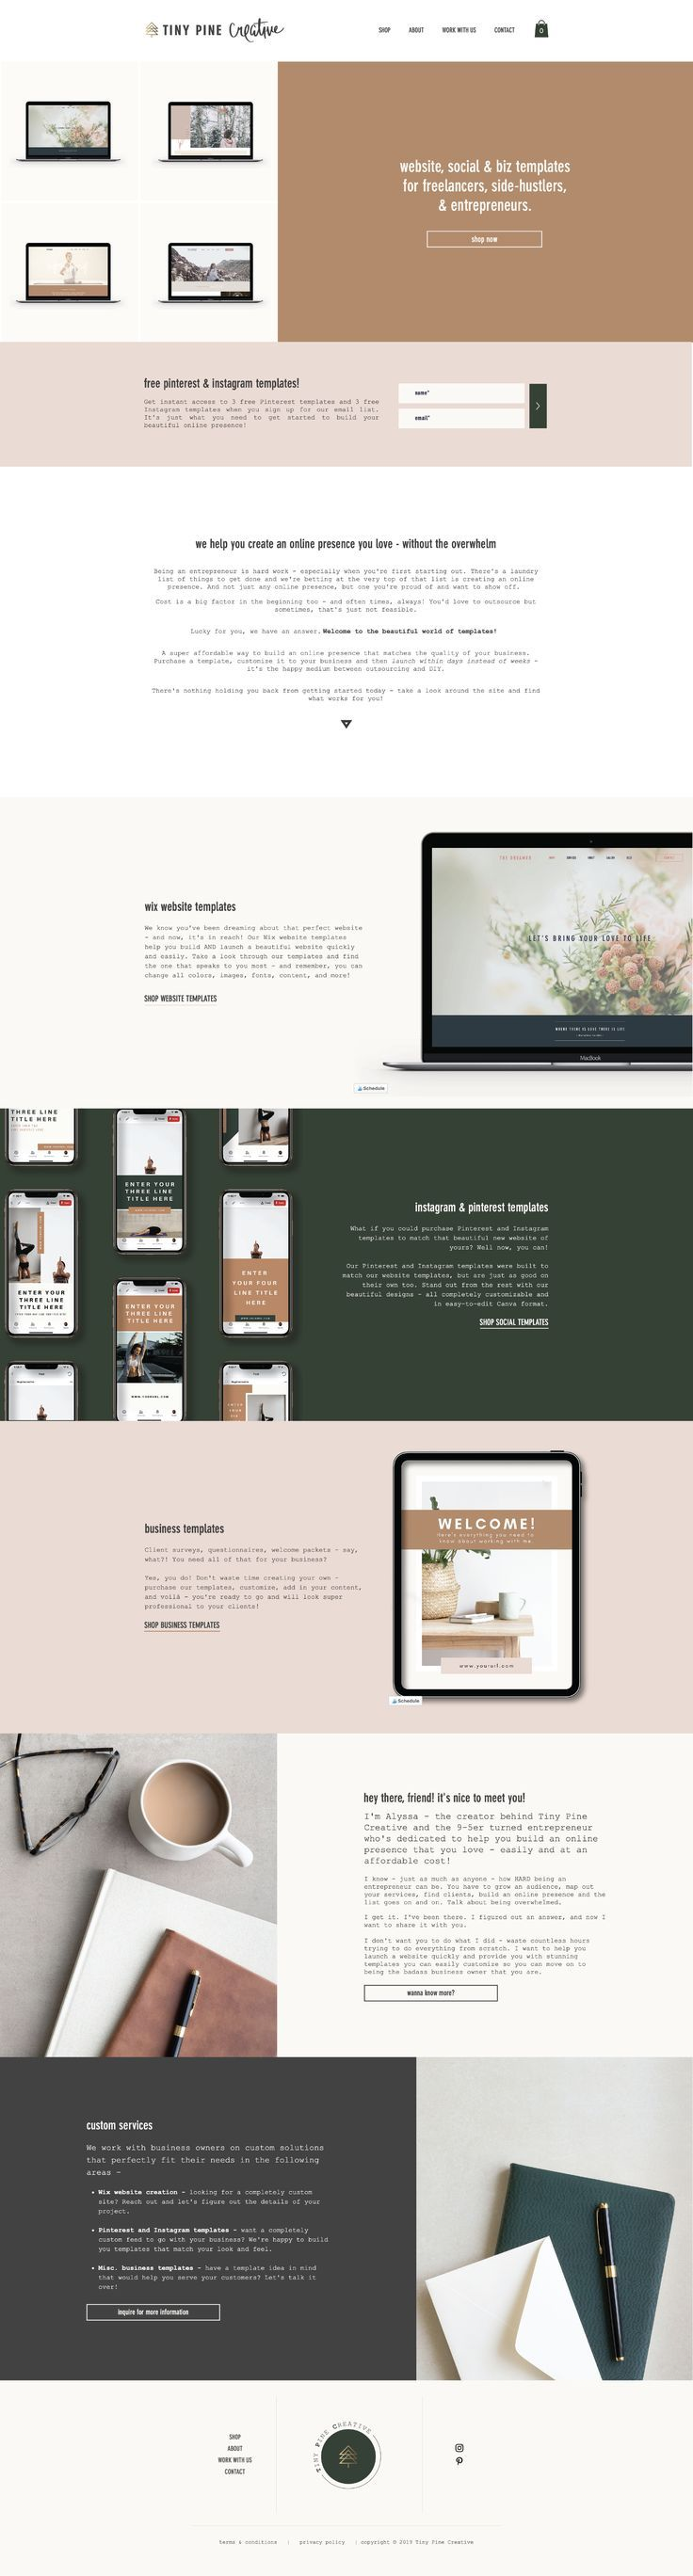 Website Social Business Templates For Entrepreneurs Wix Website Templates Website Template Instagram Template